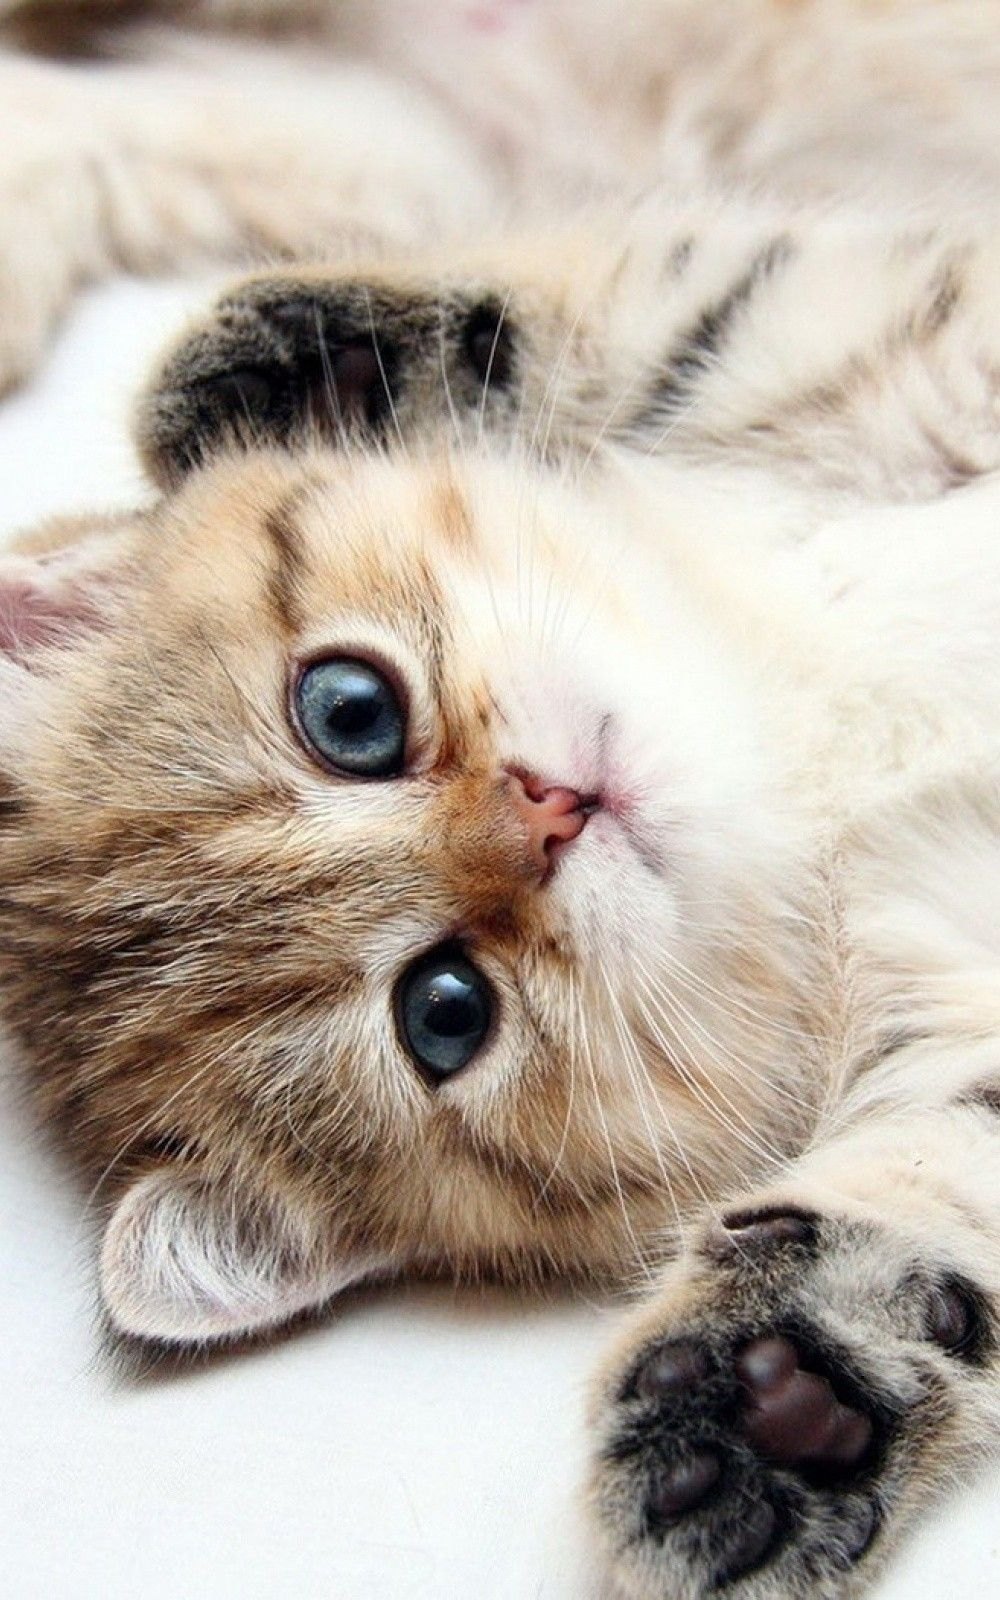 Wallpaper iphone cute cat - Cutest Cats My Garden Hd Wallpaper Iphonewallpaperscute